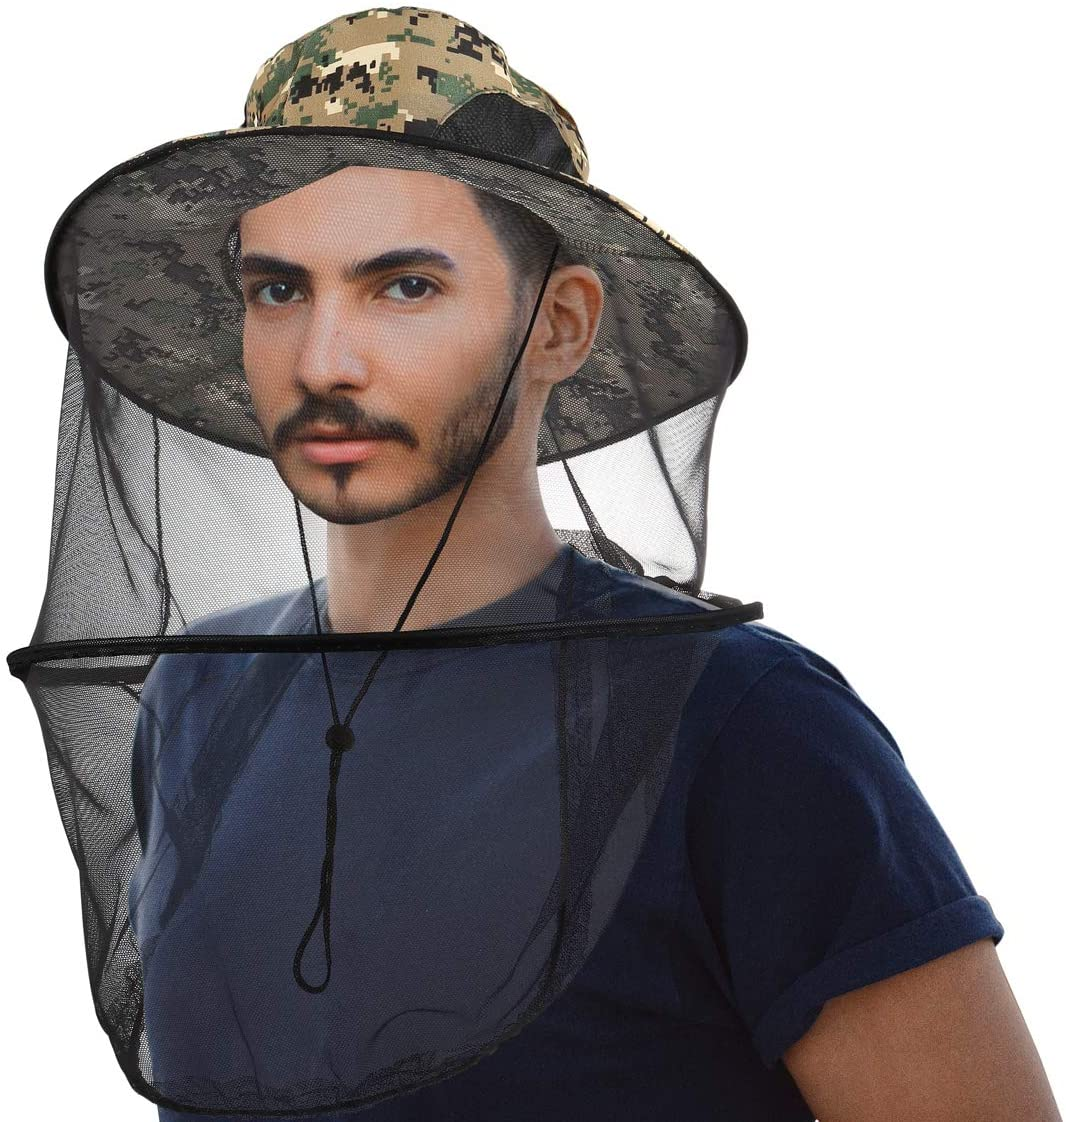 CozyCabin Mosquito Head Net Hat with Hidden Mesh, Outdoor Fishing Hat Sun Hat Repellent Protection from Insect Bug Bee for Outdoor Lover Men or Women(Green Digital Camouflage)